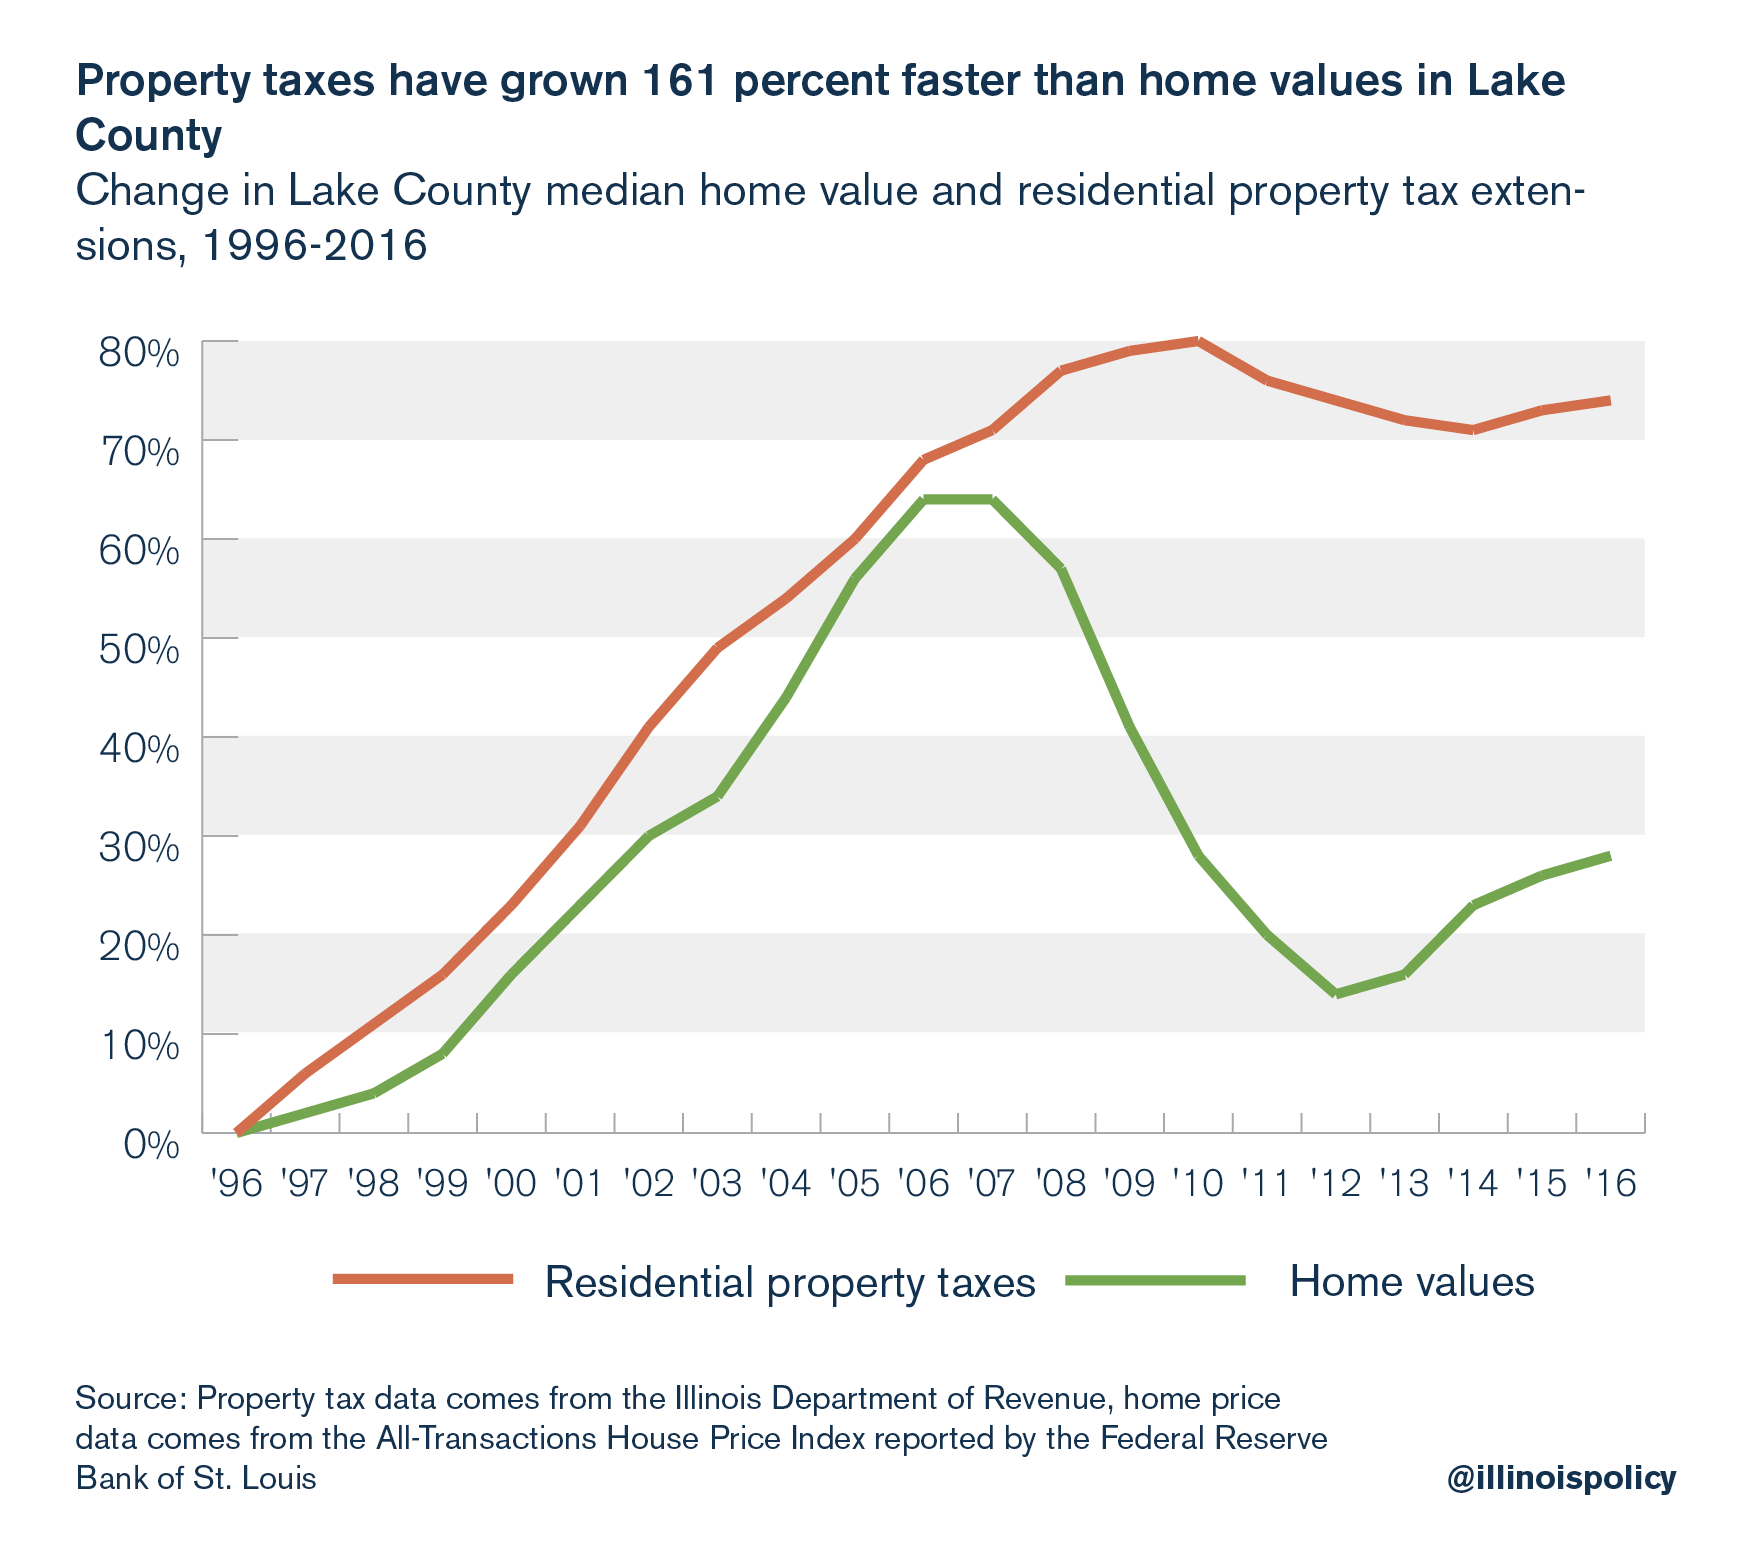 Property taxes have grown 161 percent faster than home values in Lake County